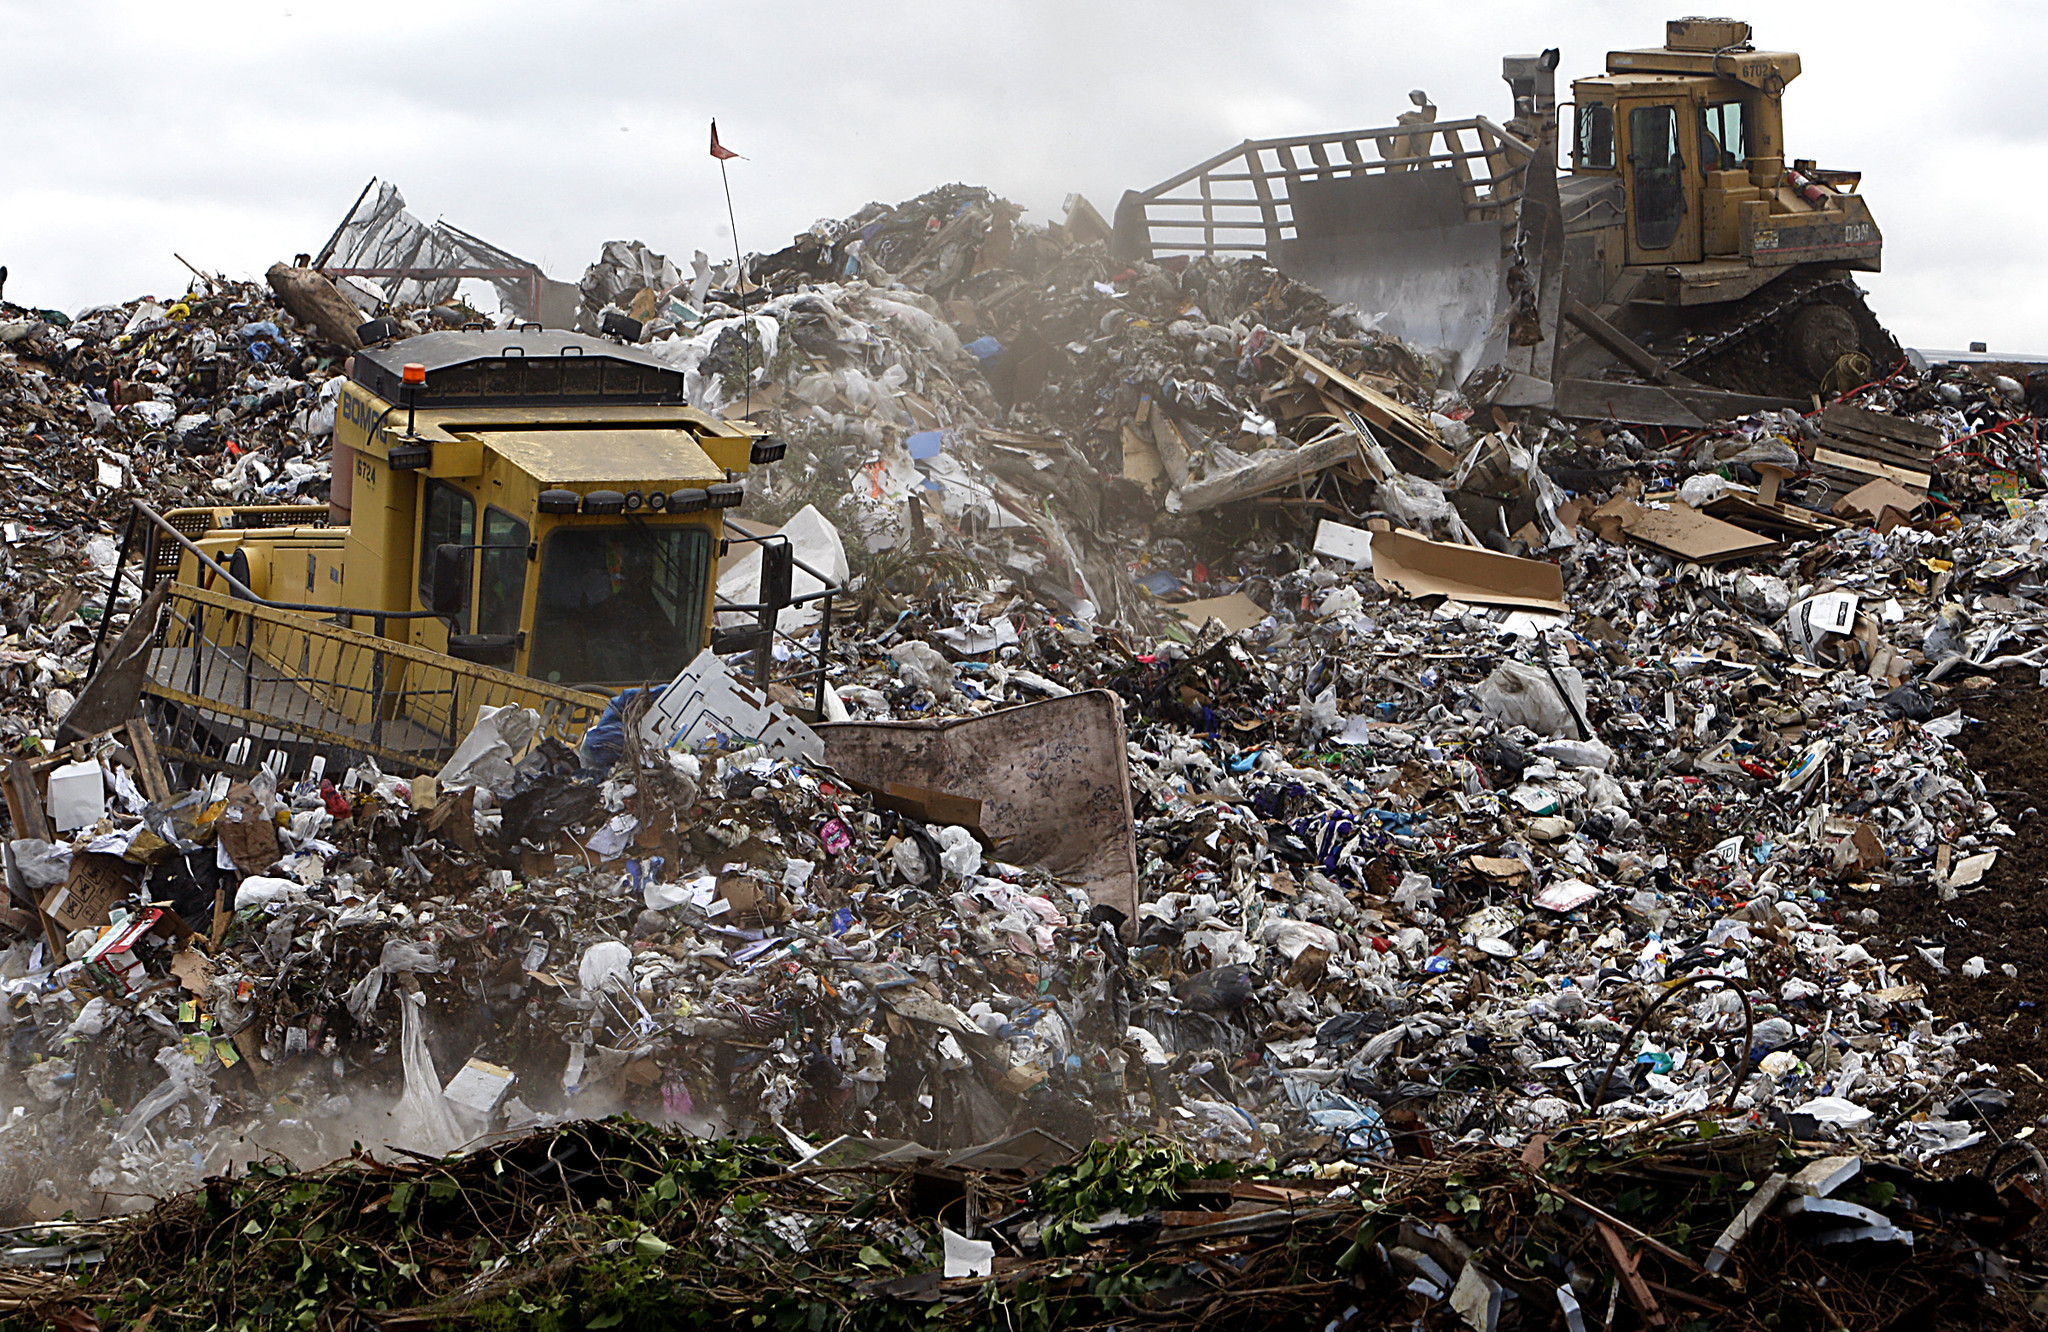 Heavy equipment operators use machinery to compact and shape mountains of trash at L.A. County's Puente Hills Landfill.